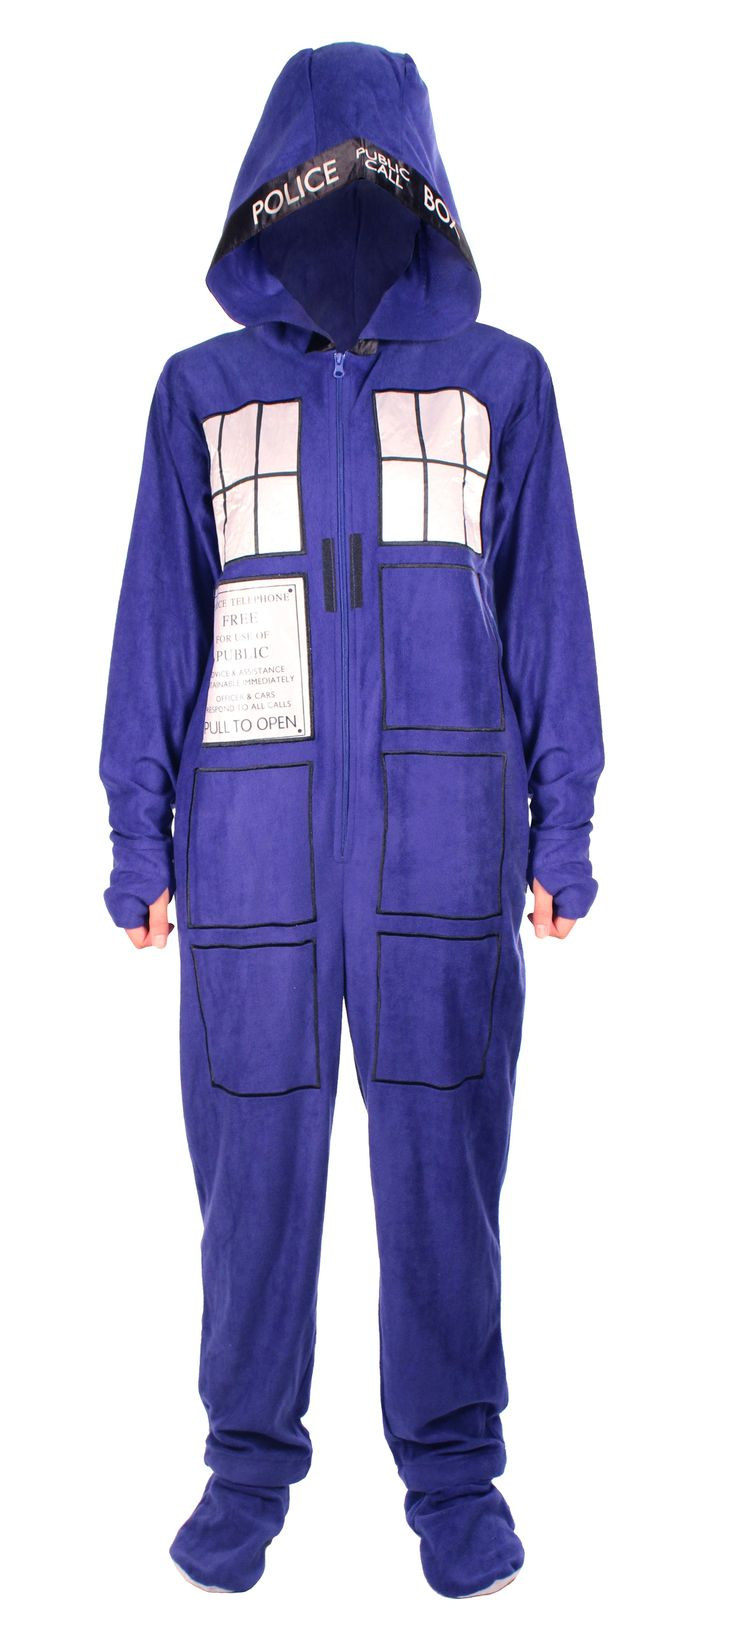 Doctor Who: Tardis Adult Onesie with Removable Feet | Doctor Who Shop